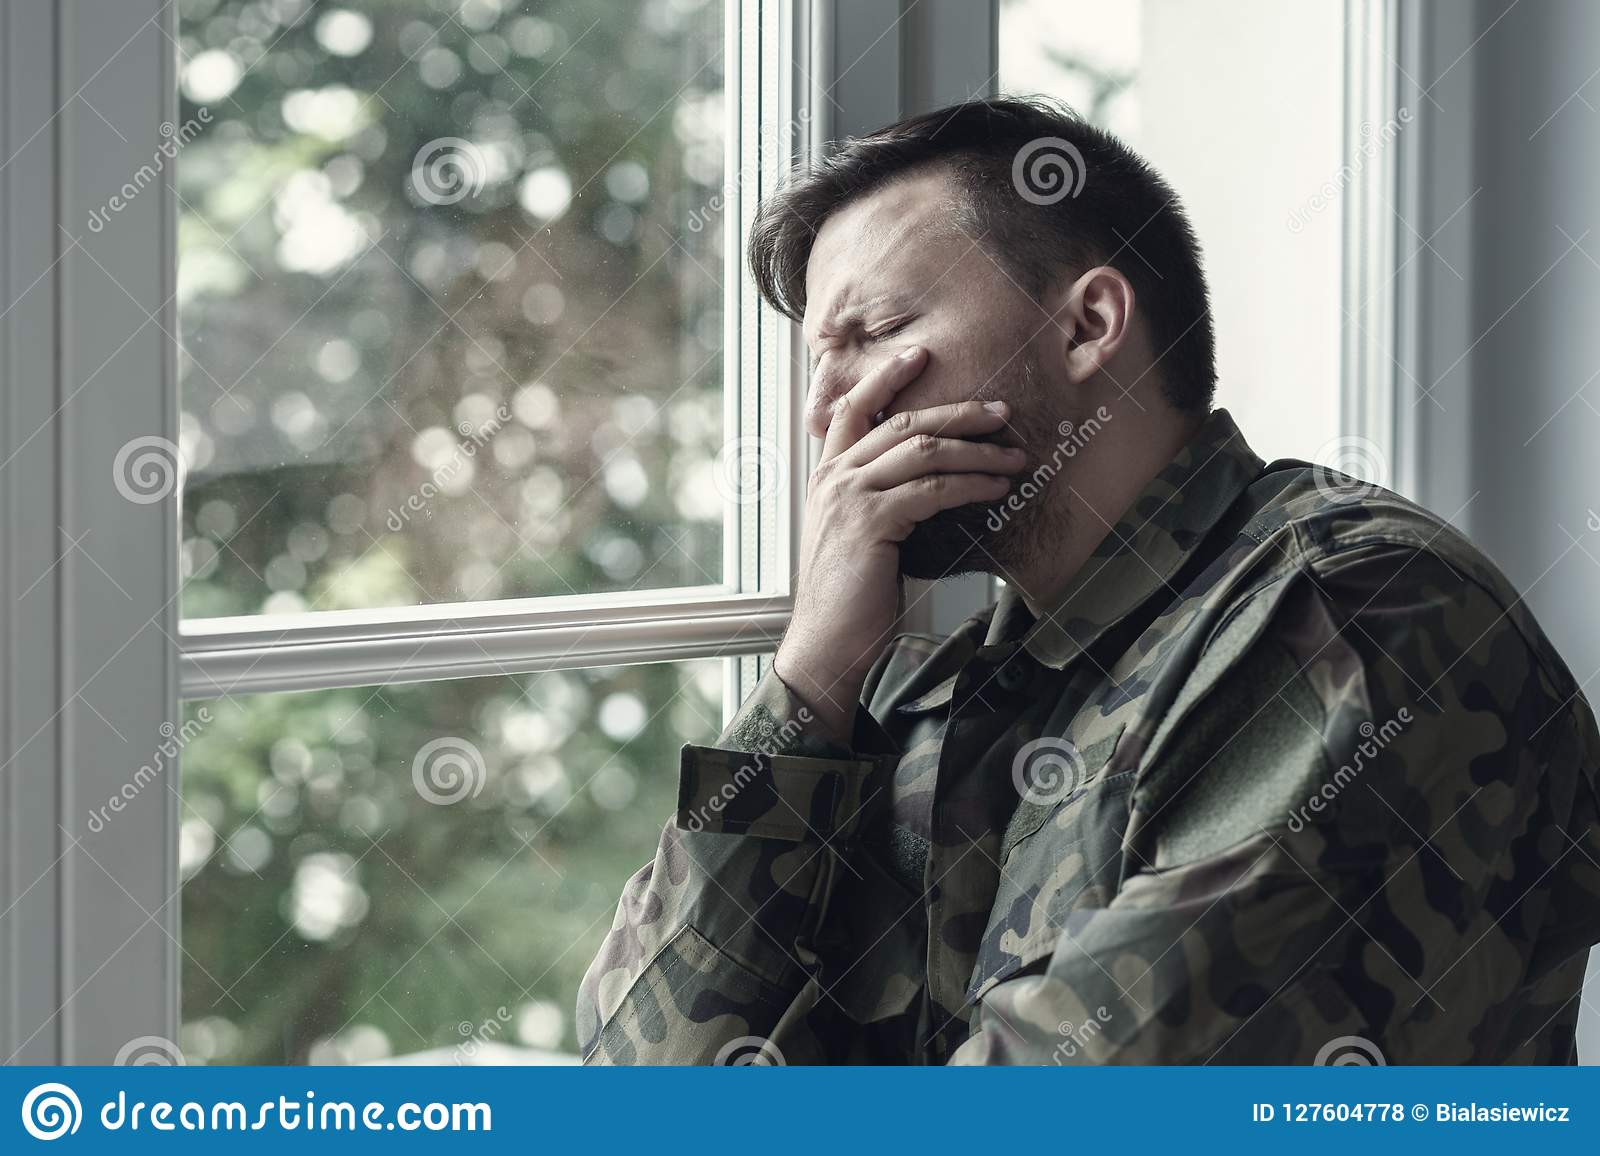 Depressed lonely soldier with emotional problem and war syndrome